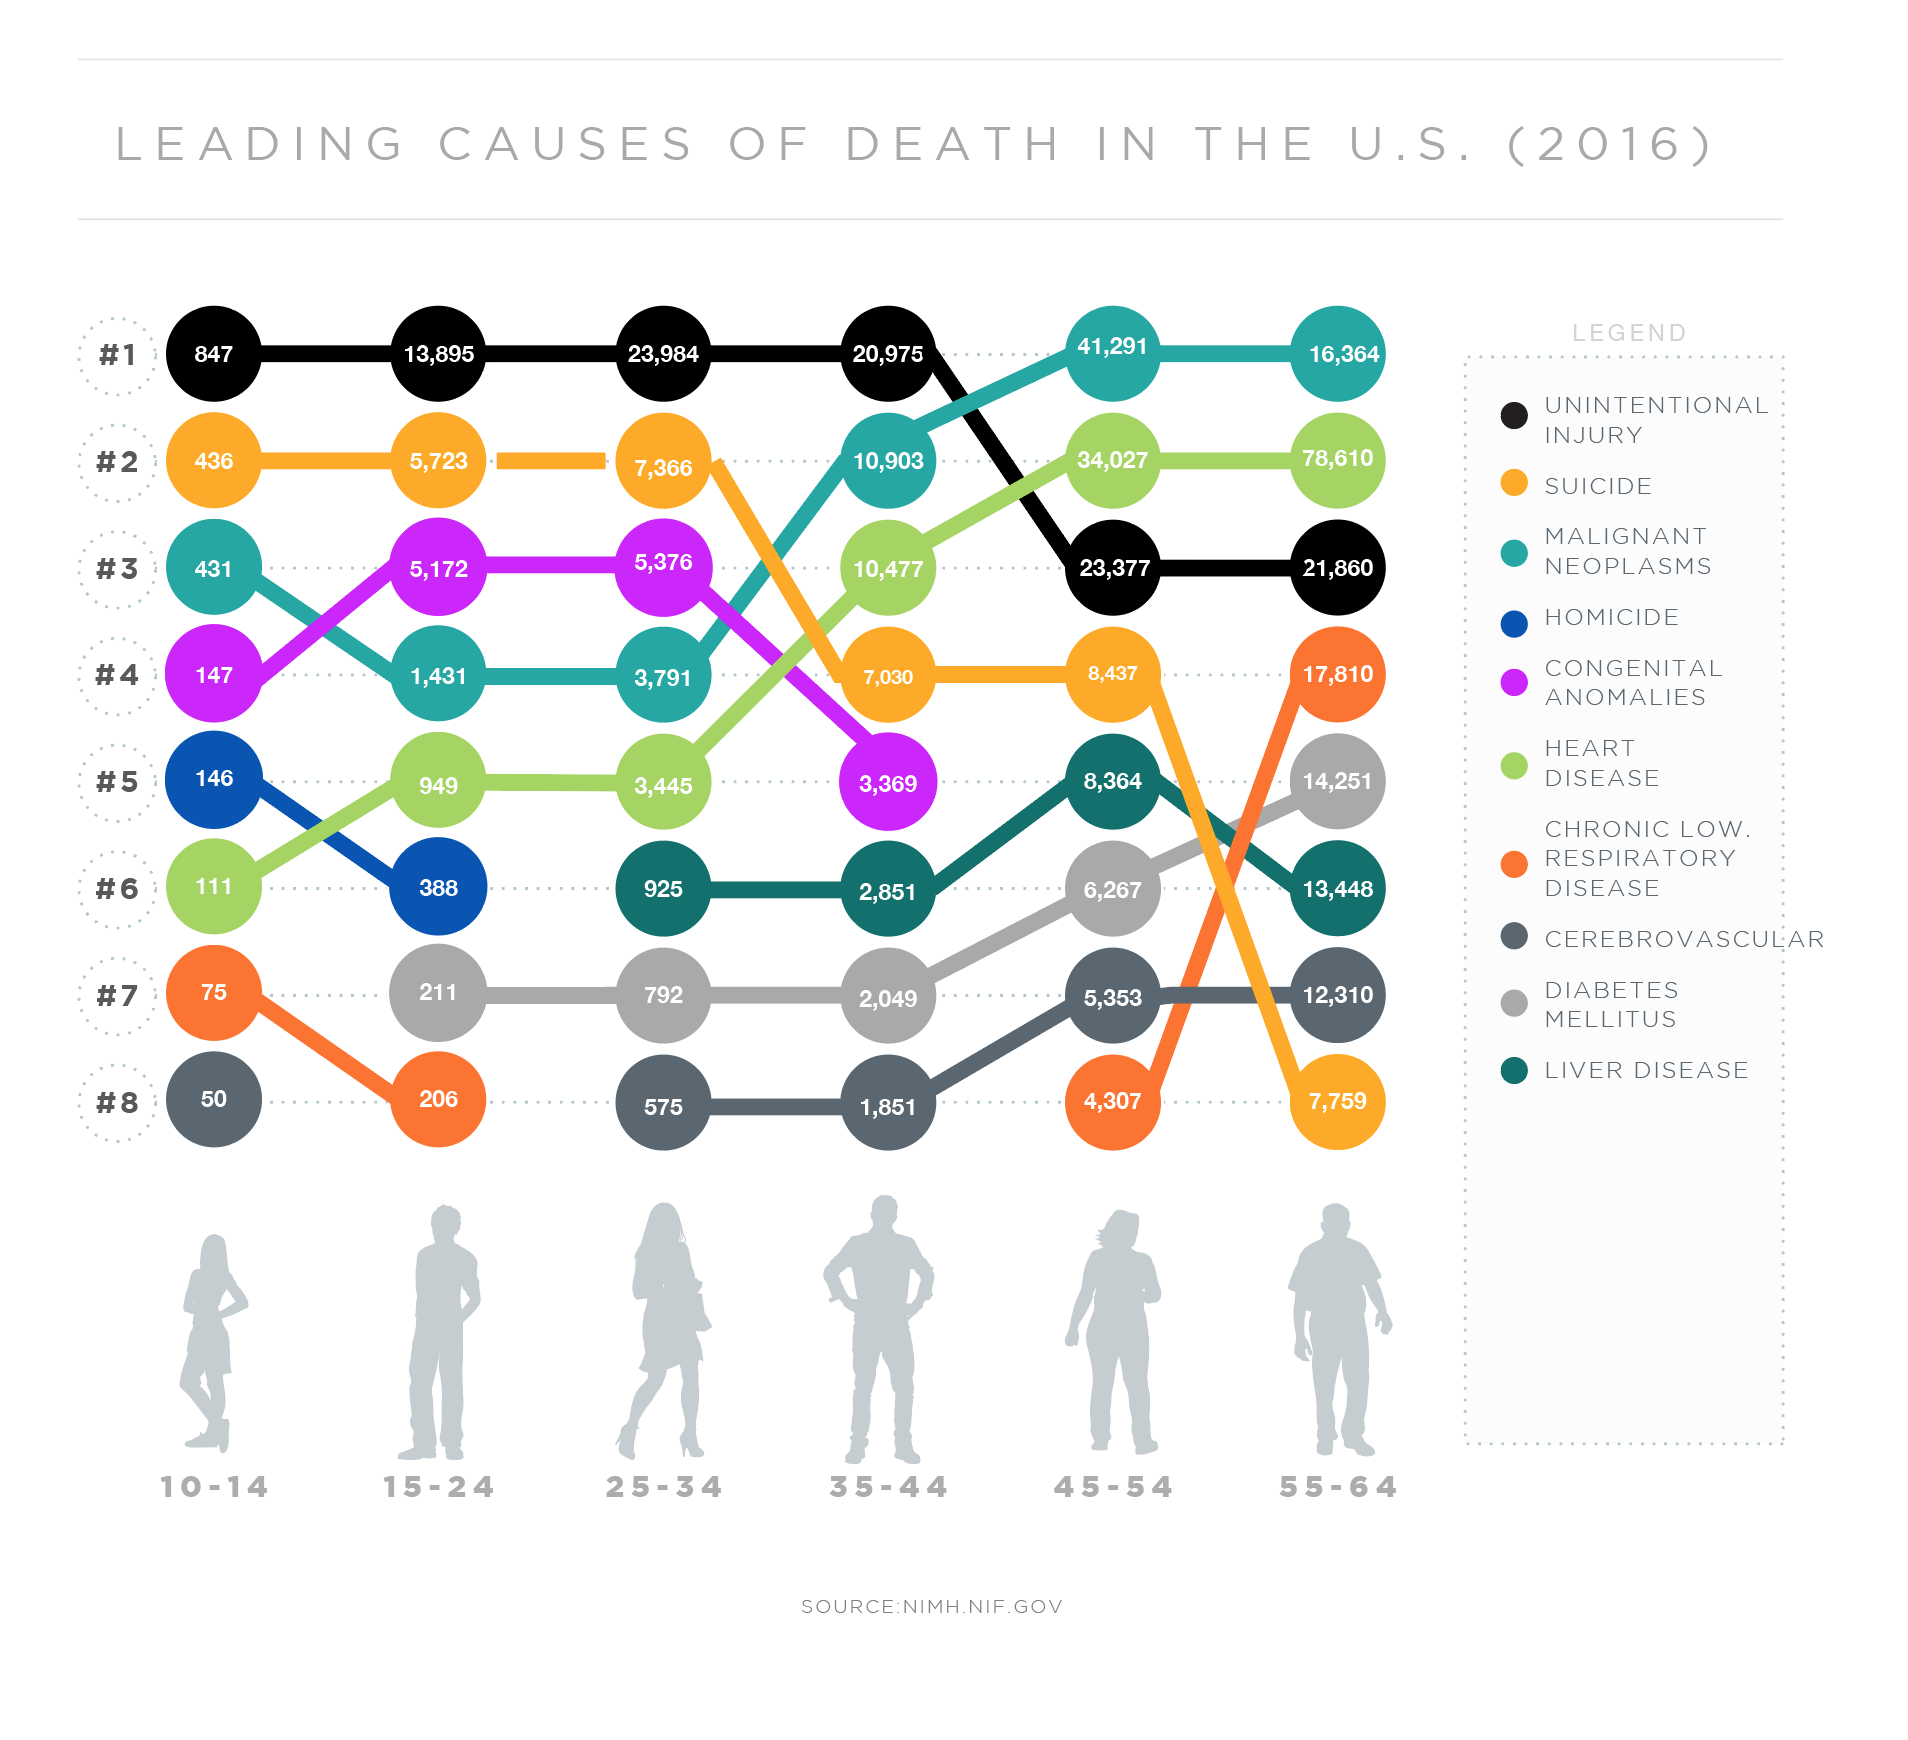 Infographic showing the leading causes of death by age group in 2016